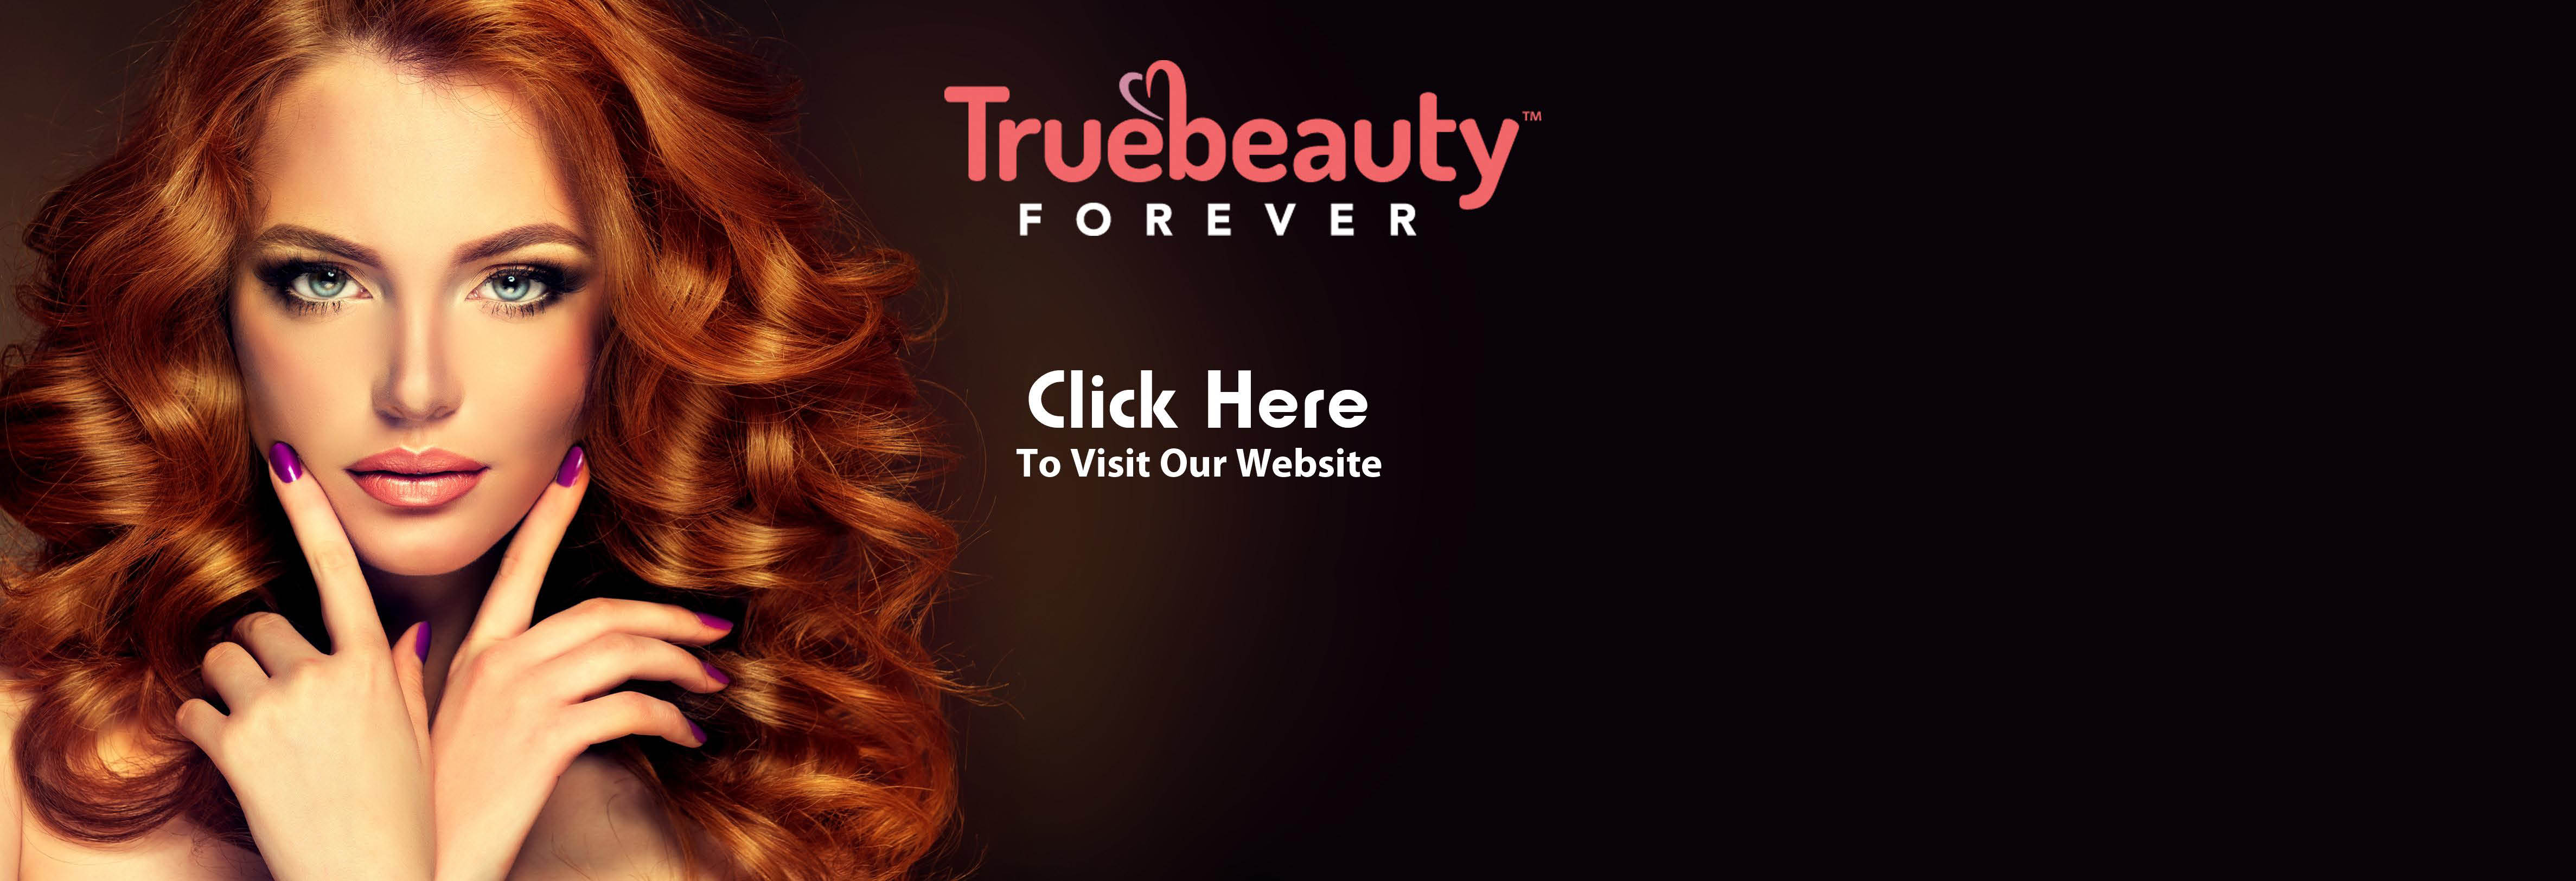 Truebeauty Forever Kaysville UT Eyelash Extensions Skin Care Microblading Brows